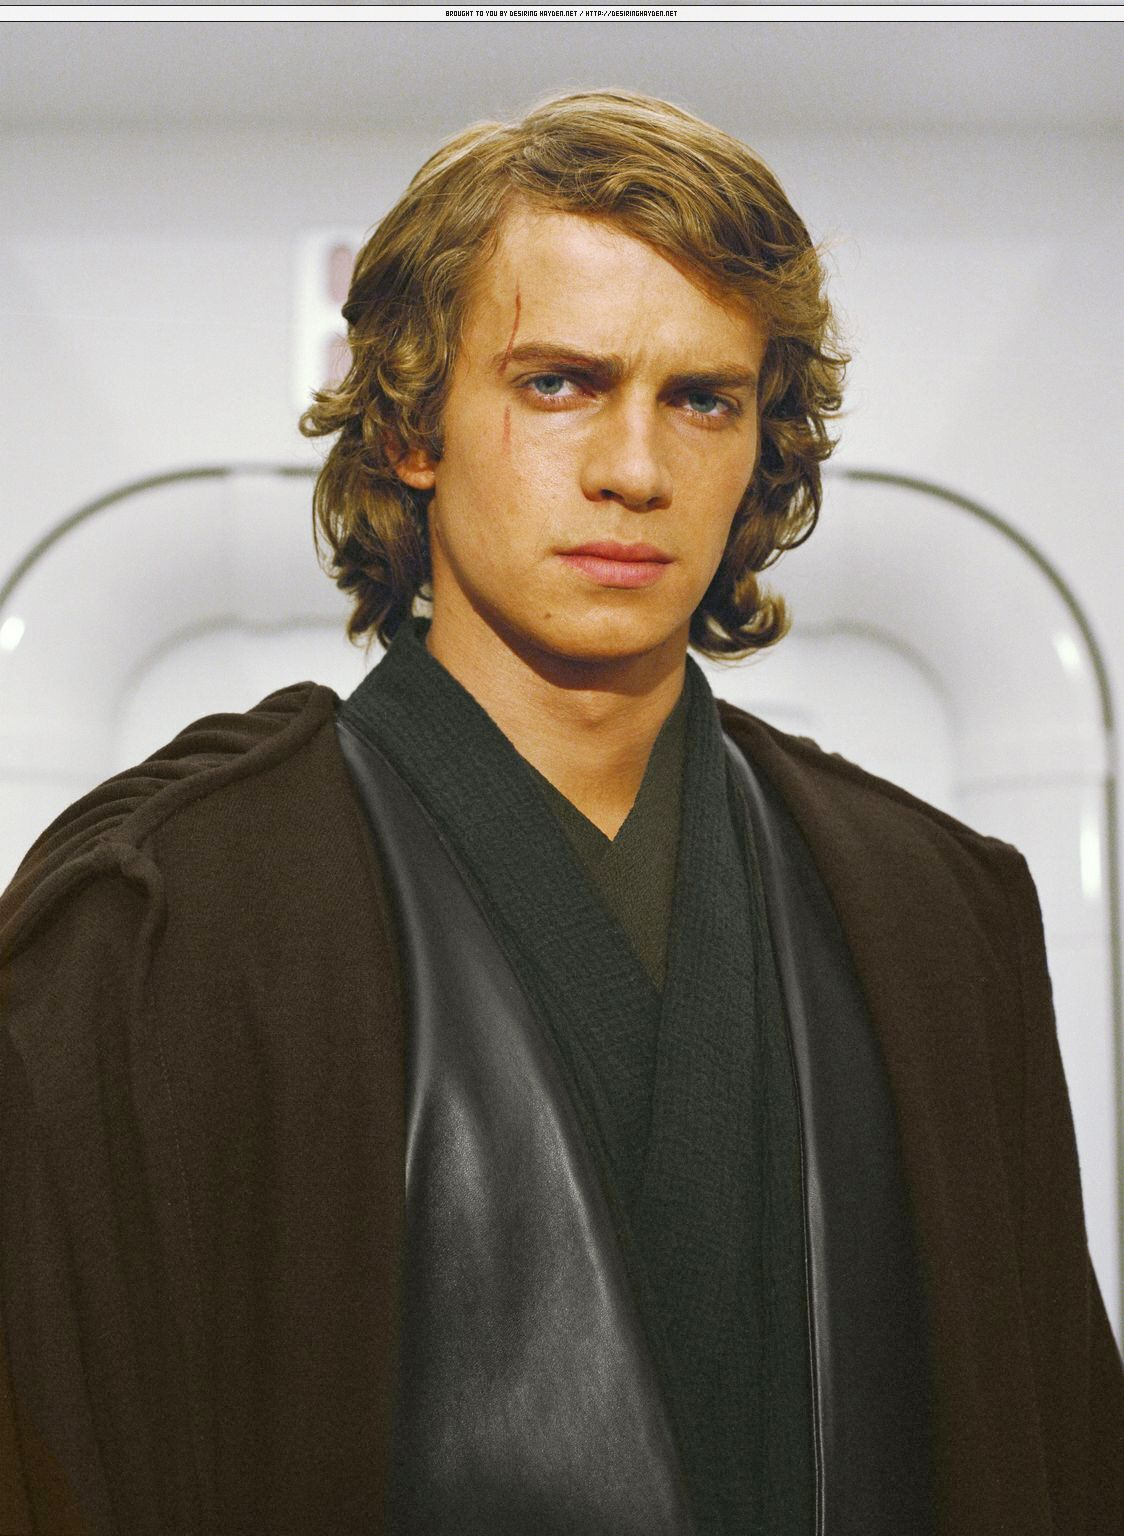 - Anakin-Skywalker-anakin-skywalker-16990821-1124-1536